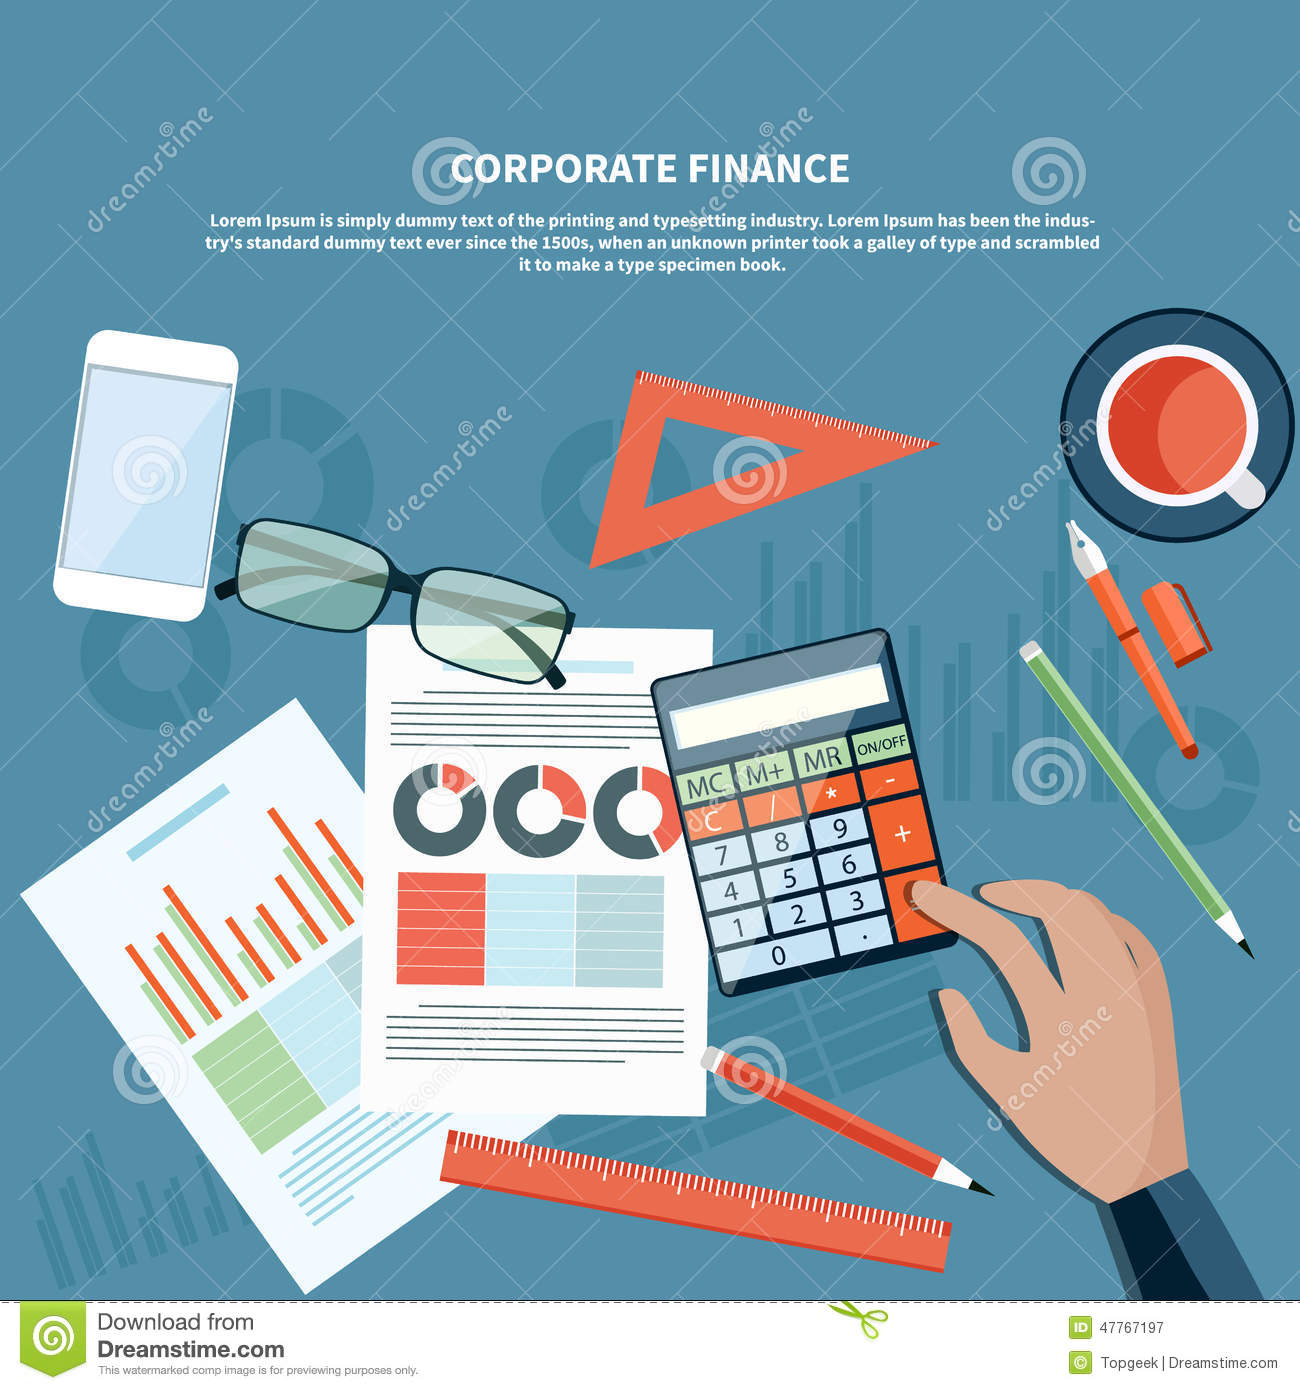 Finance: Corporate Finance, Business Management Concept Stock